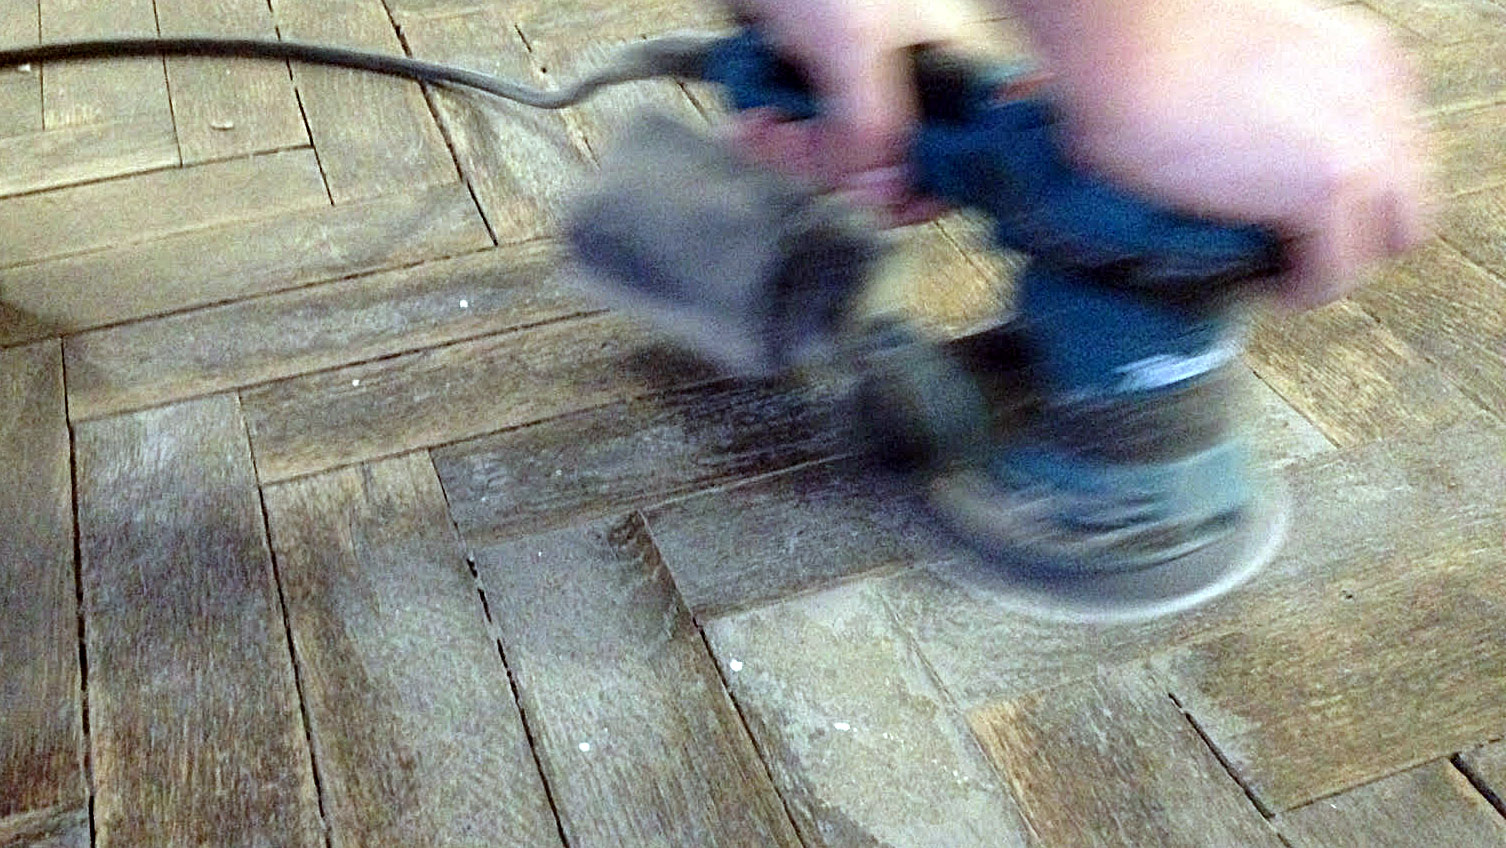 Floor sanding with Random Orbital Sander